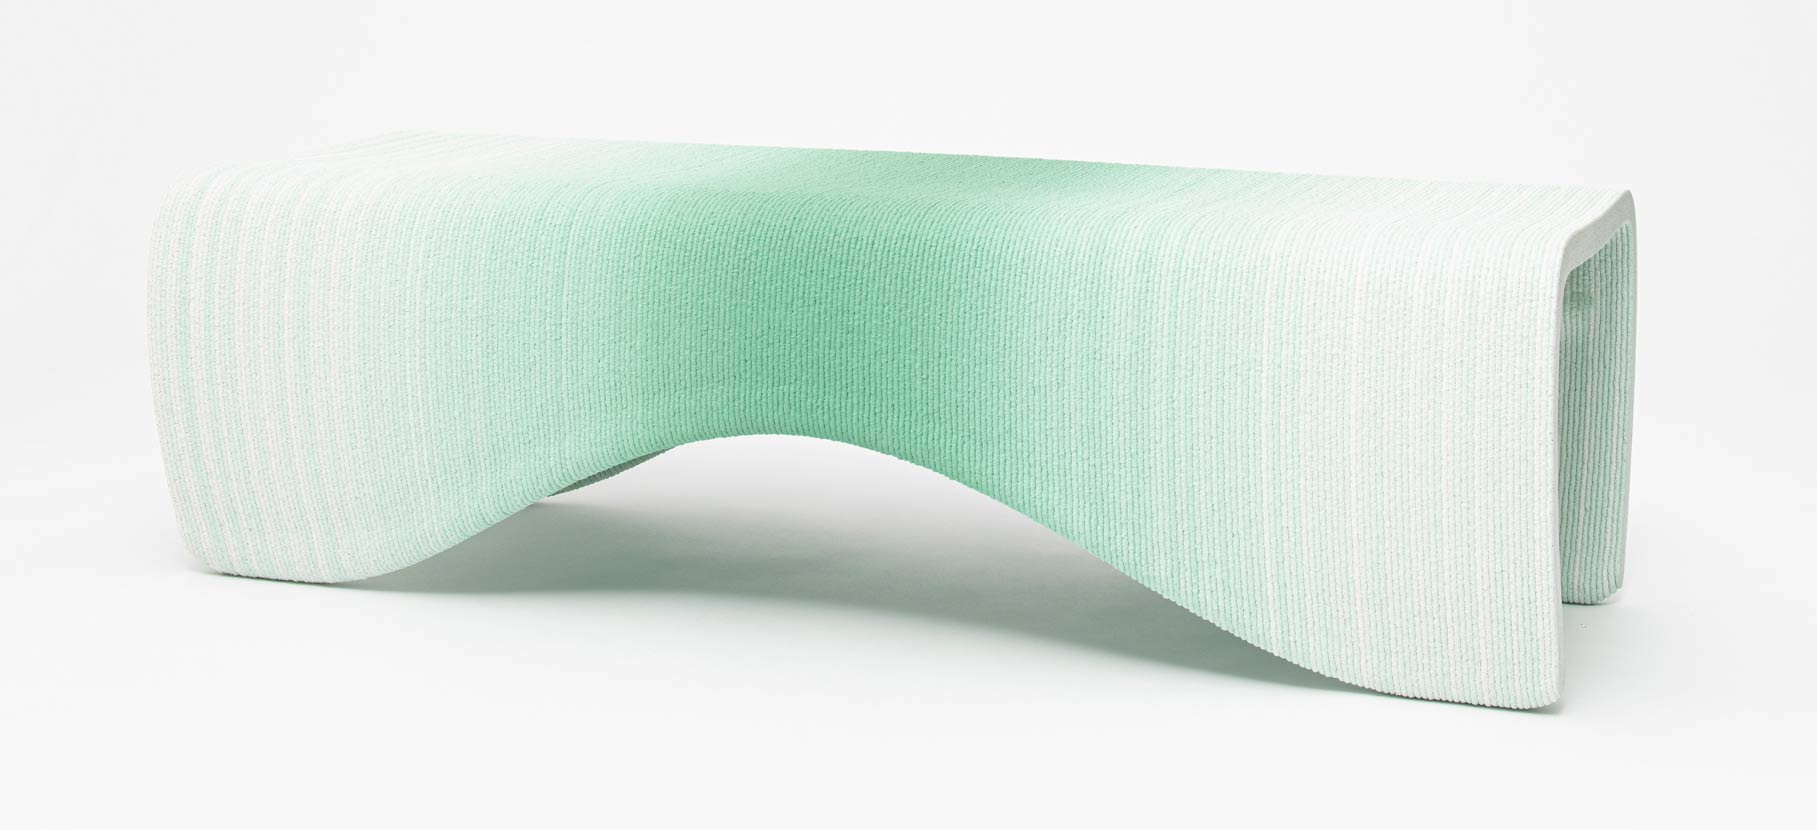 Gradient_Bench_Small_1